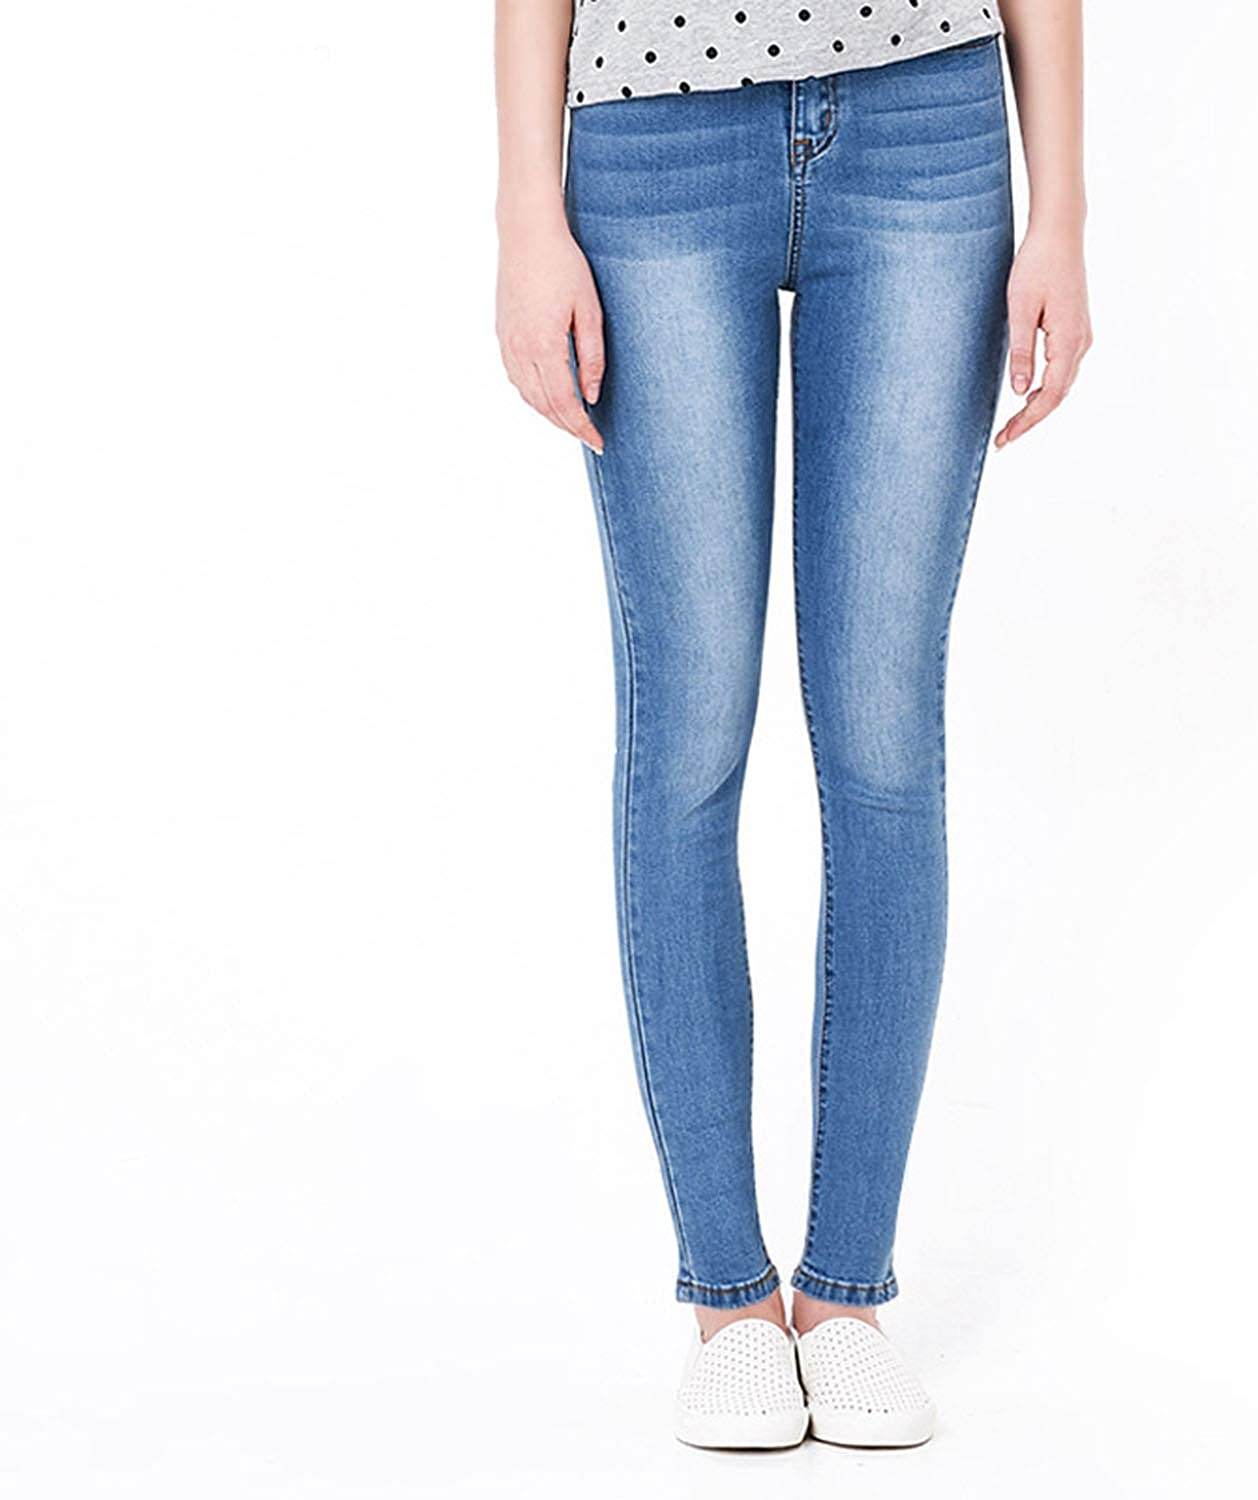 Alerghrg Jeans Woman High Elastic Plus Size Stretch Jeans Female Washed,Light bluee in White,S,Russian Federation